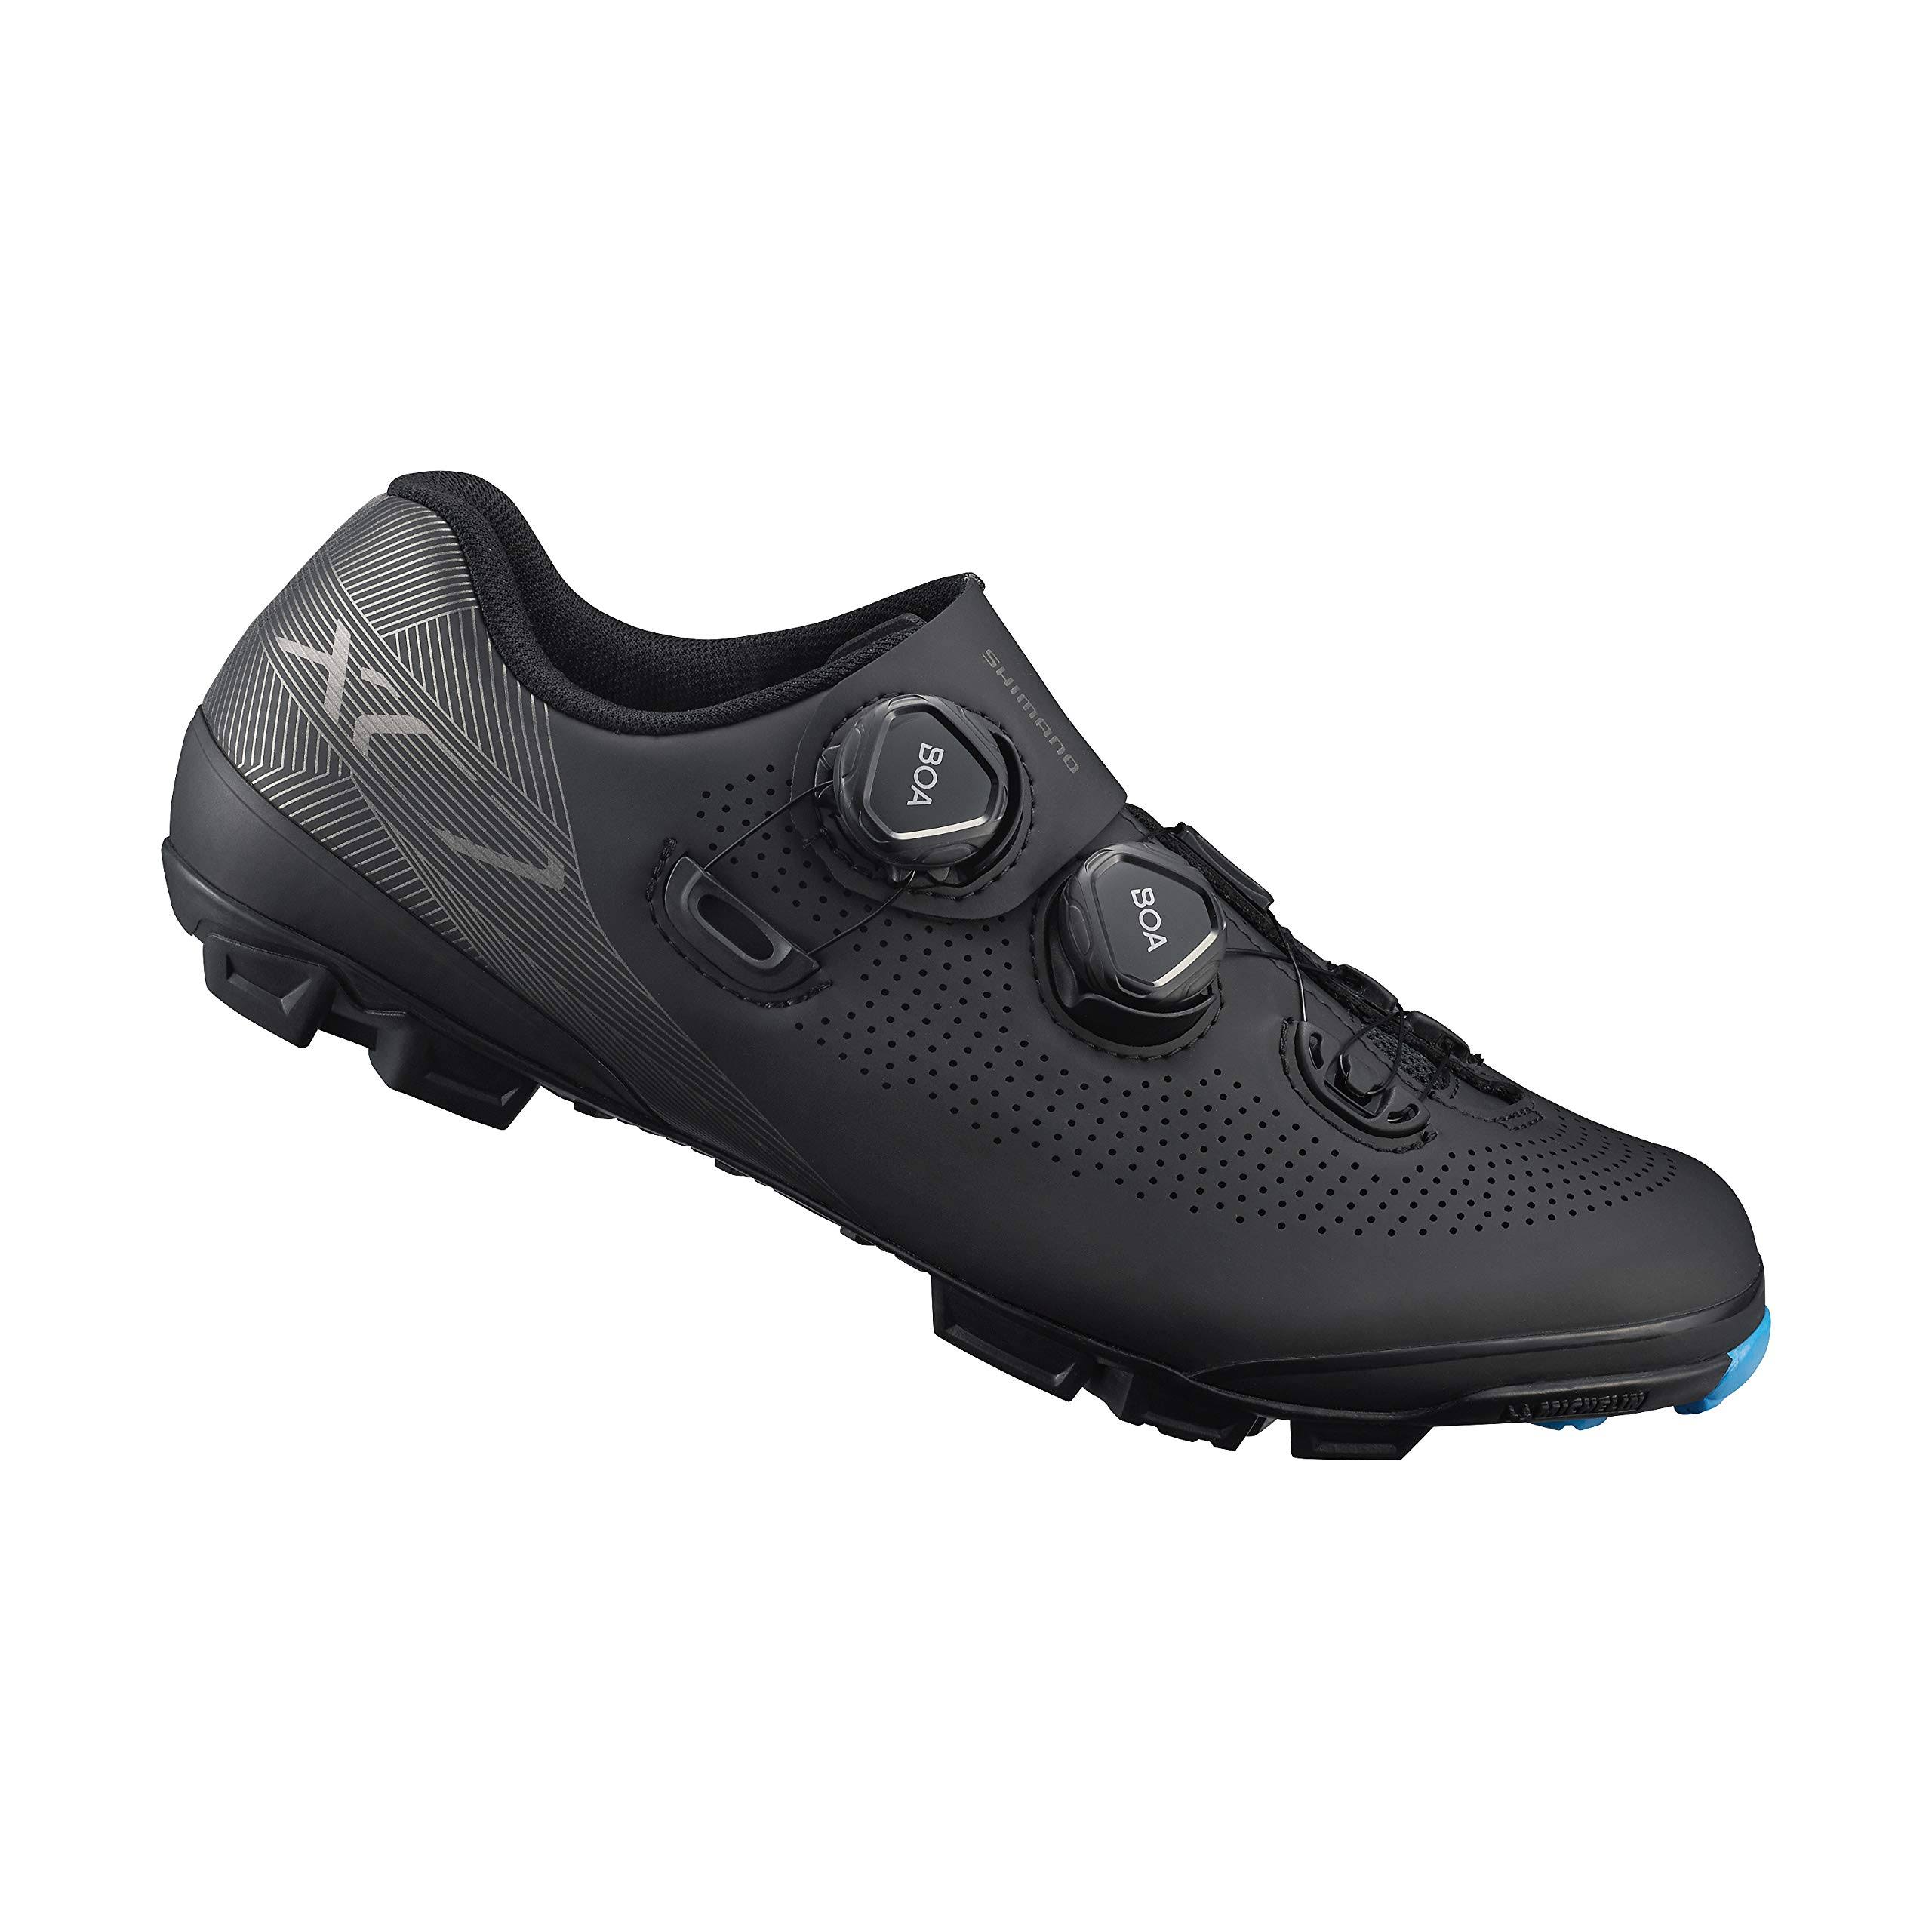 Shimano SH-XC7 Mountain Bike Shoes Men's Black / 41